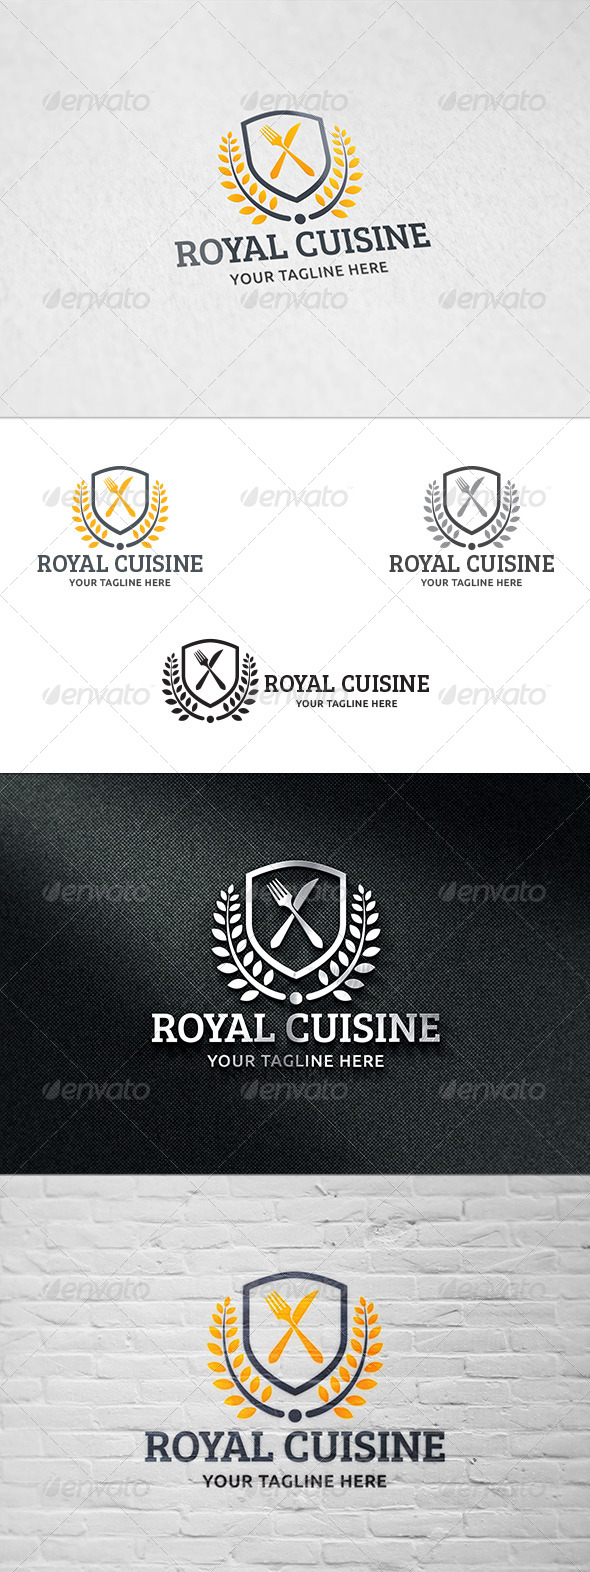 GraphicRiver Royal Cuisine Logo Template 8541774